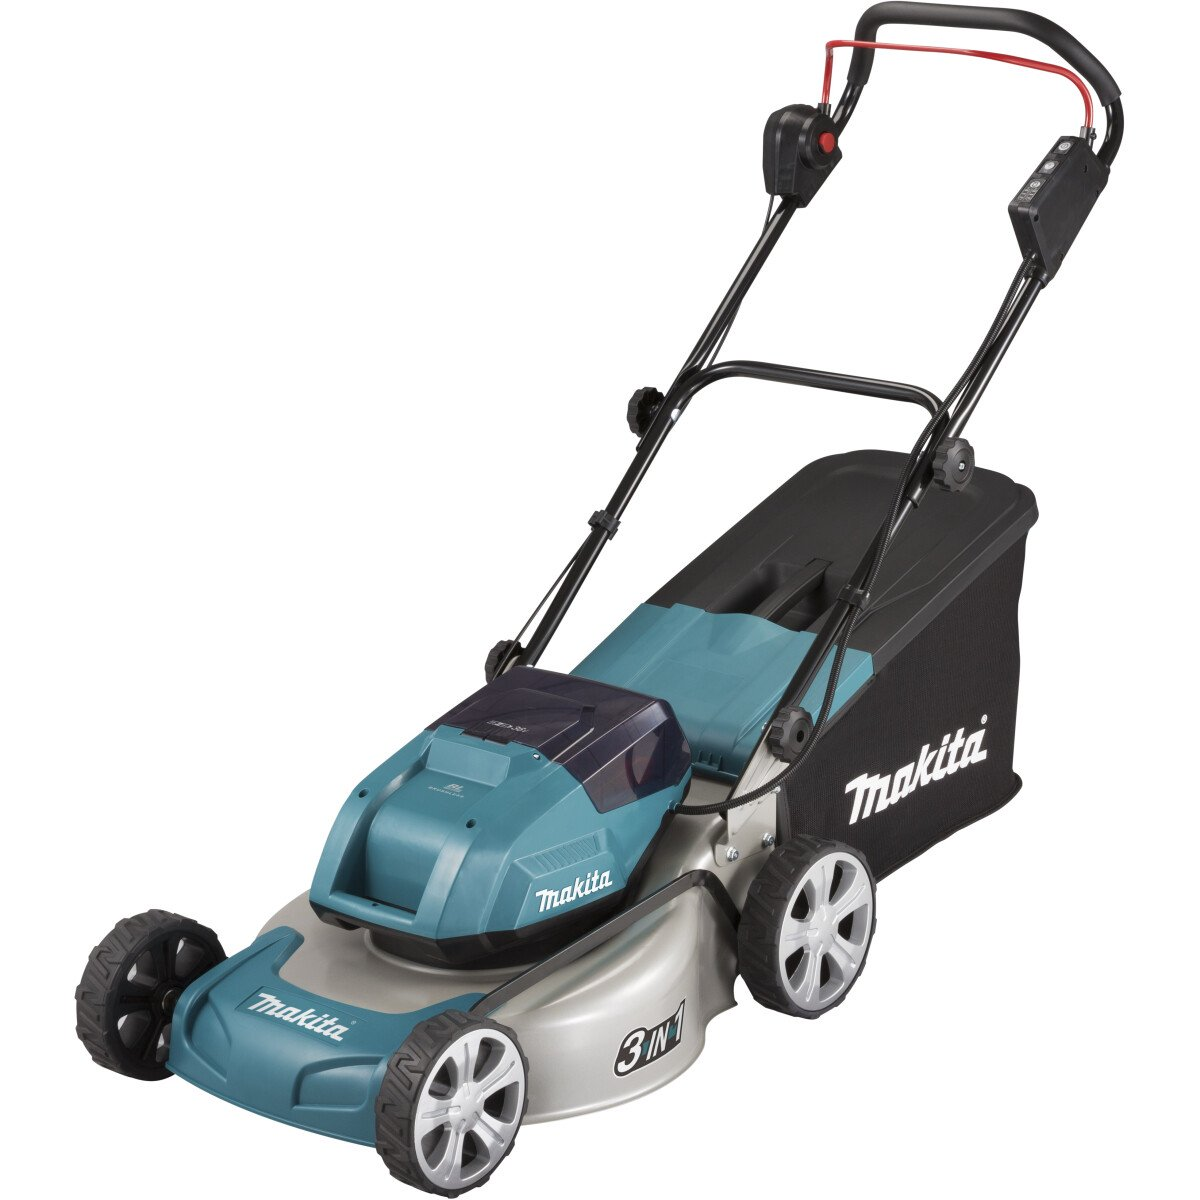 Makita DLM460PG2 Twin 18V Brushless Lawn Mower 46cm with 2 x 6.0Ah Batteries